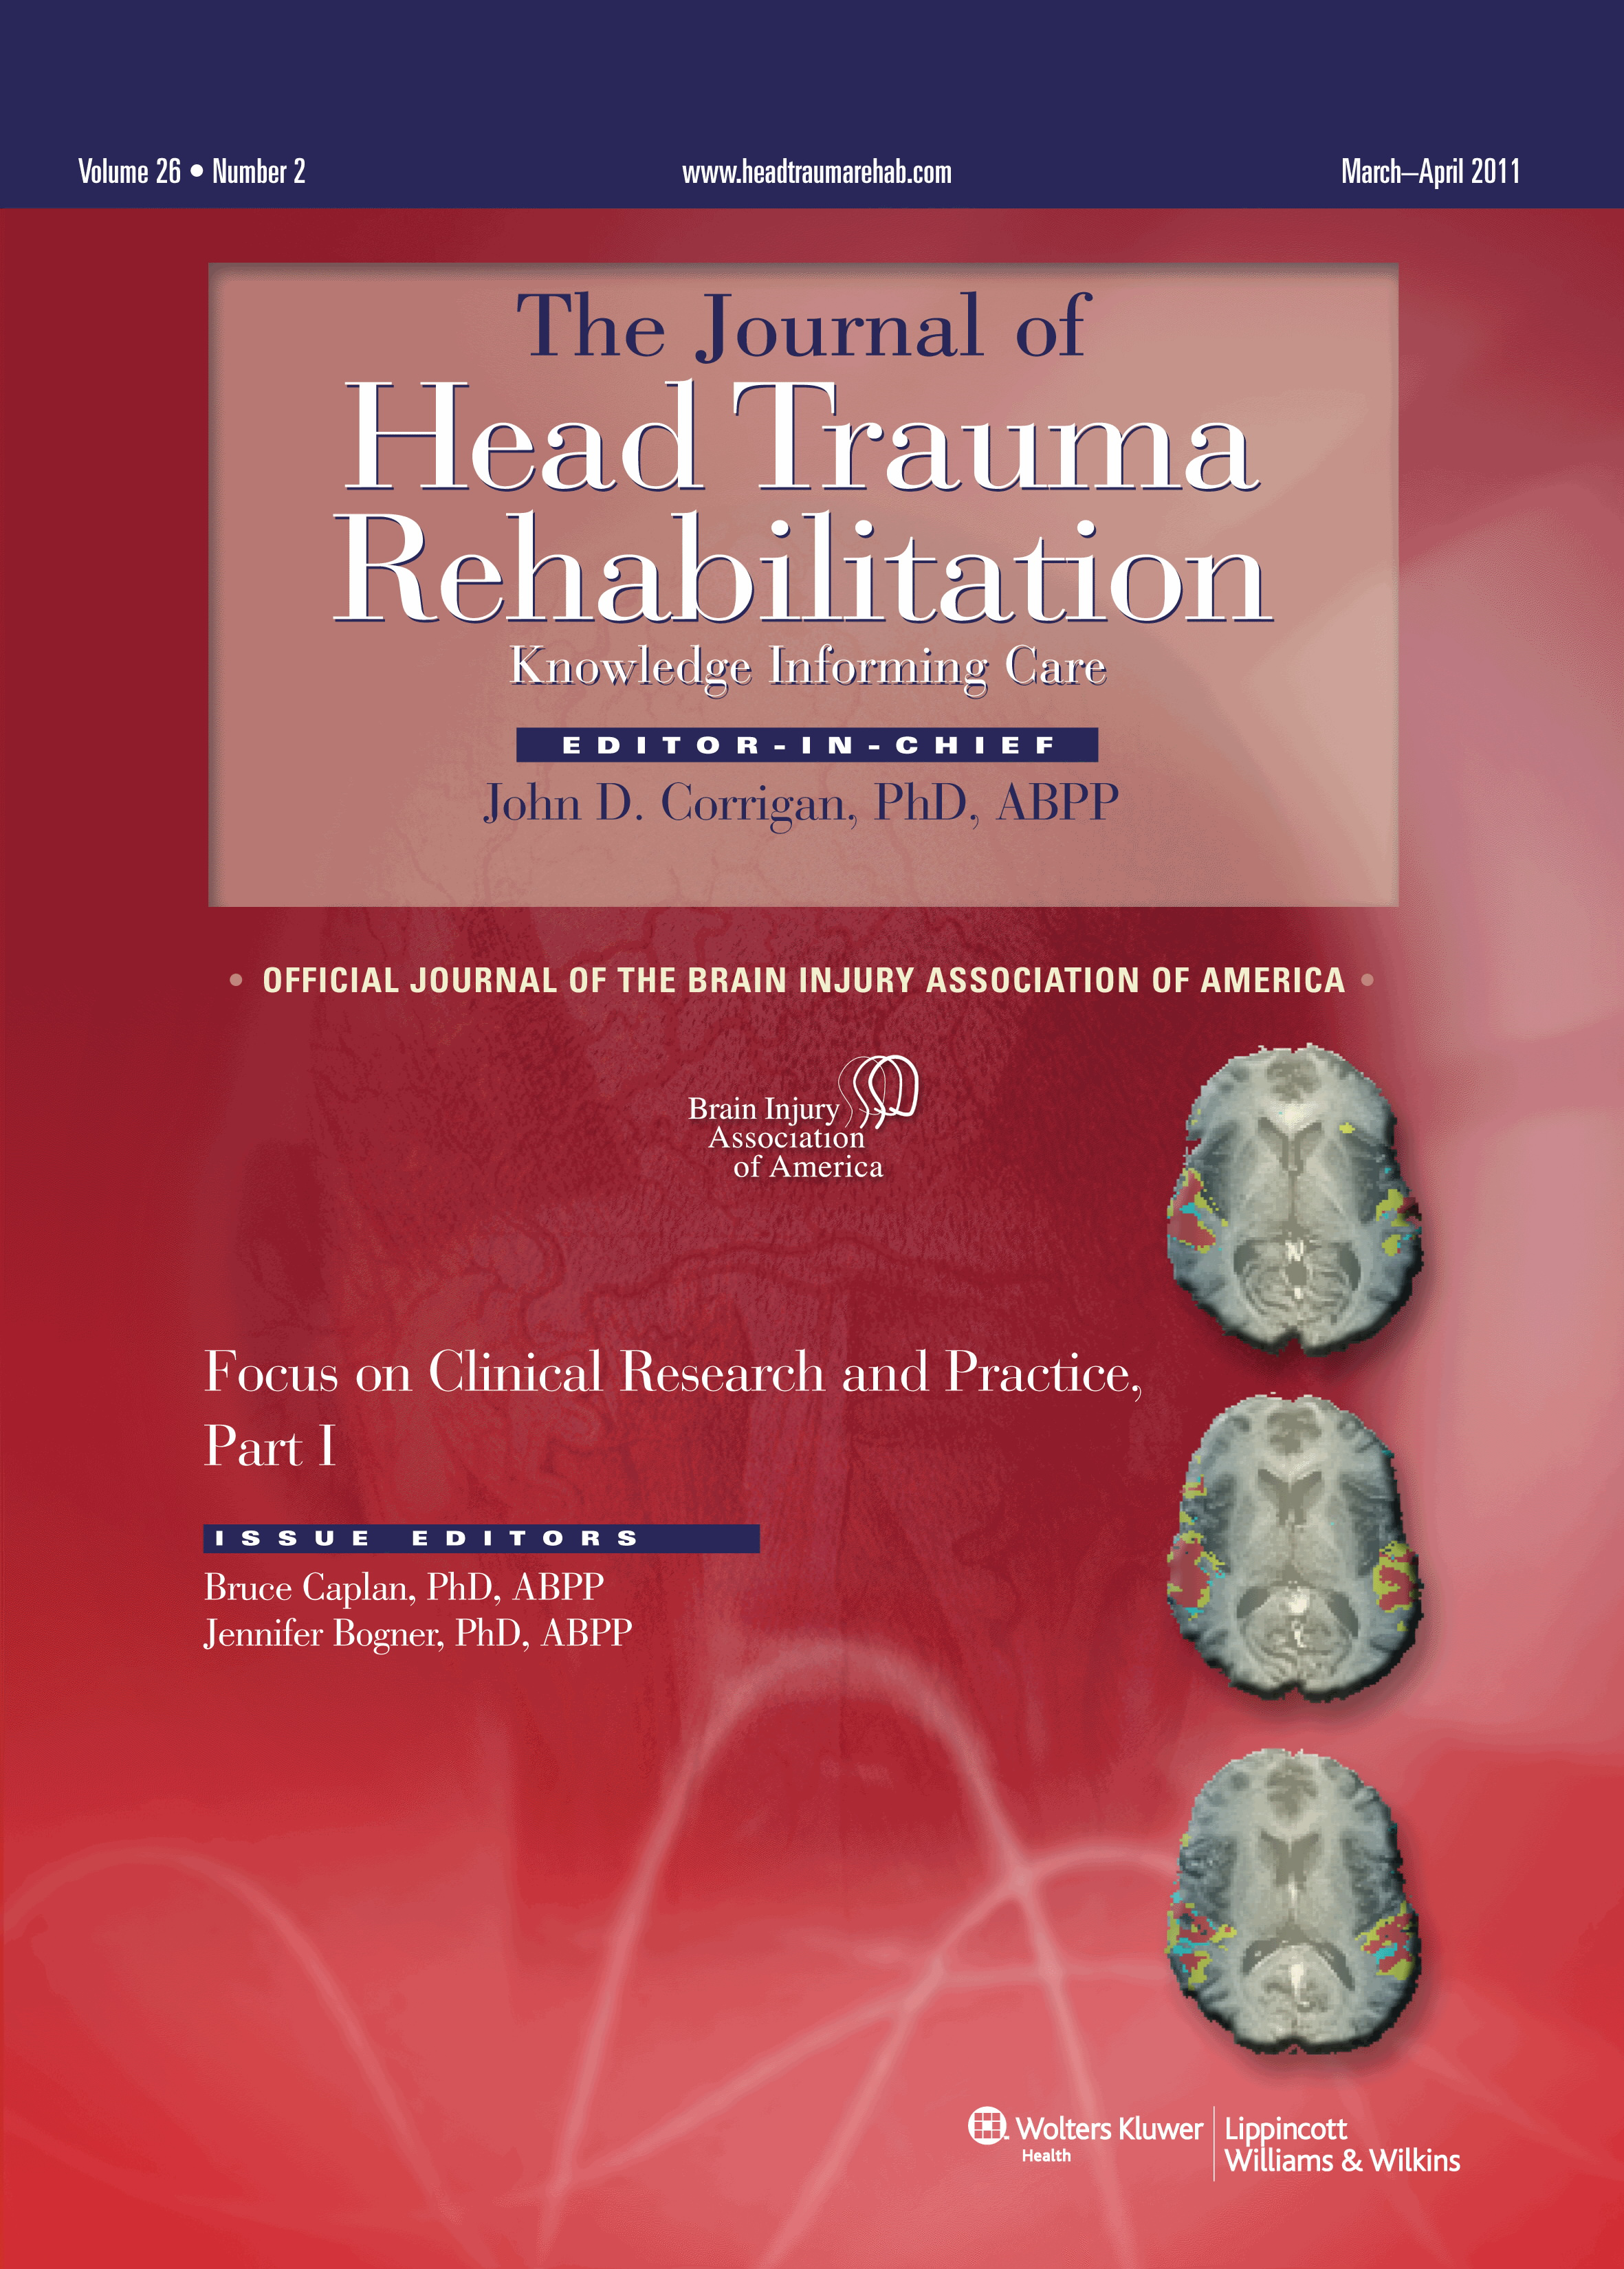 Prevalence, Assessment, and Treatment of Mild Traumatic Brain Injury